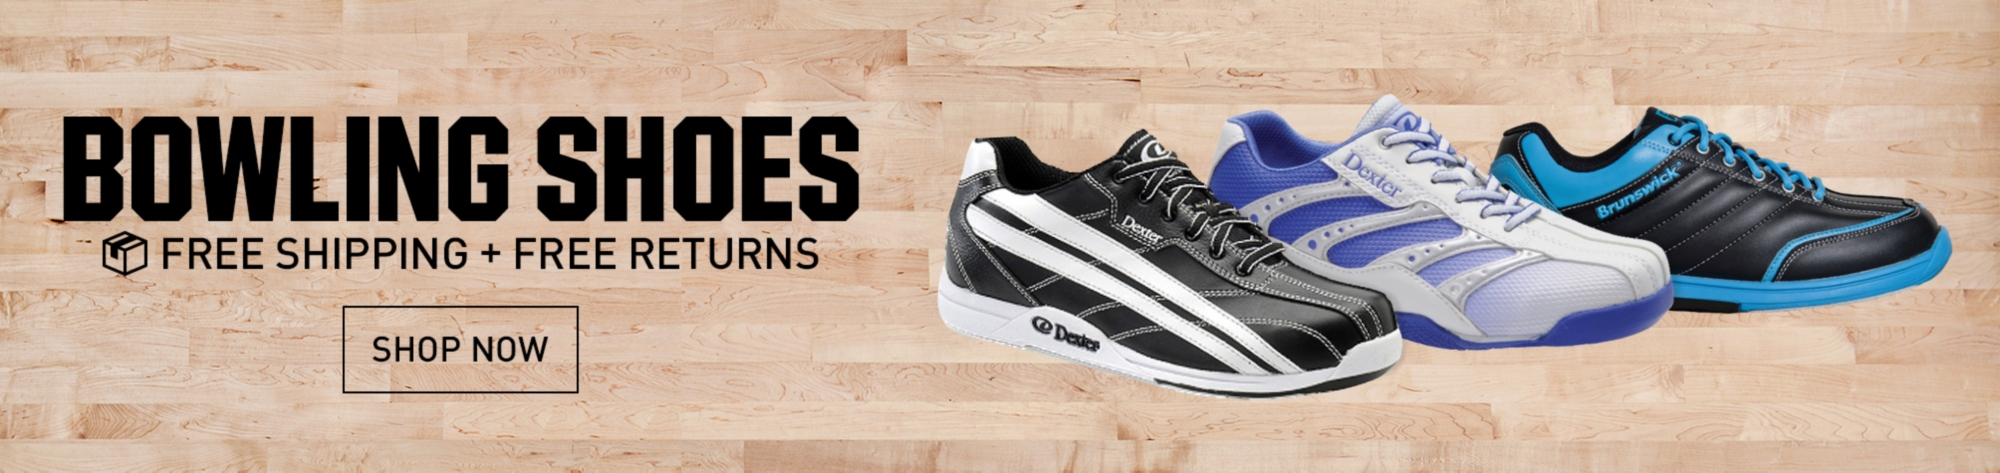 Bowling Shoes - Free Shipping + Free Returns